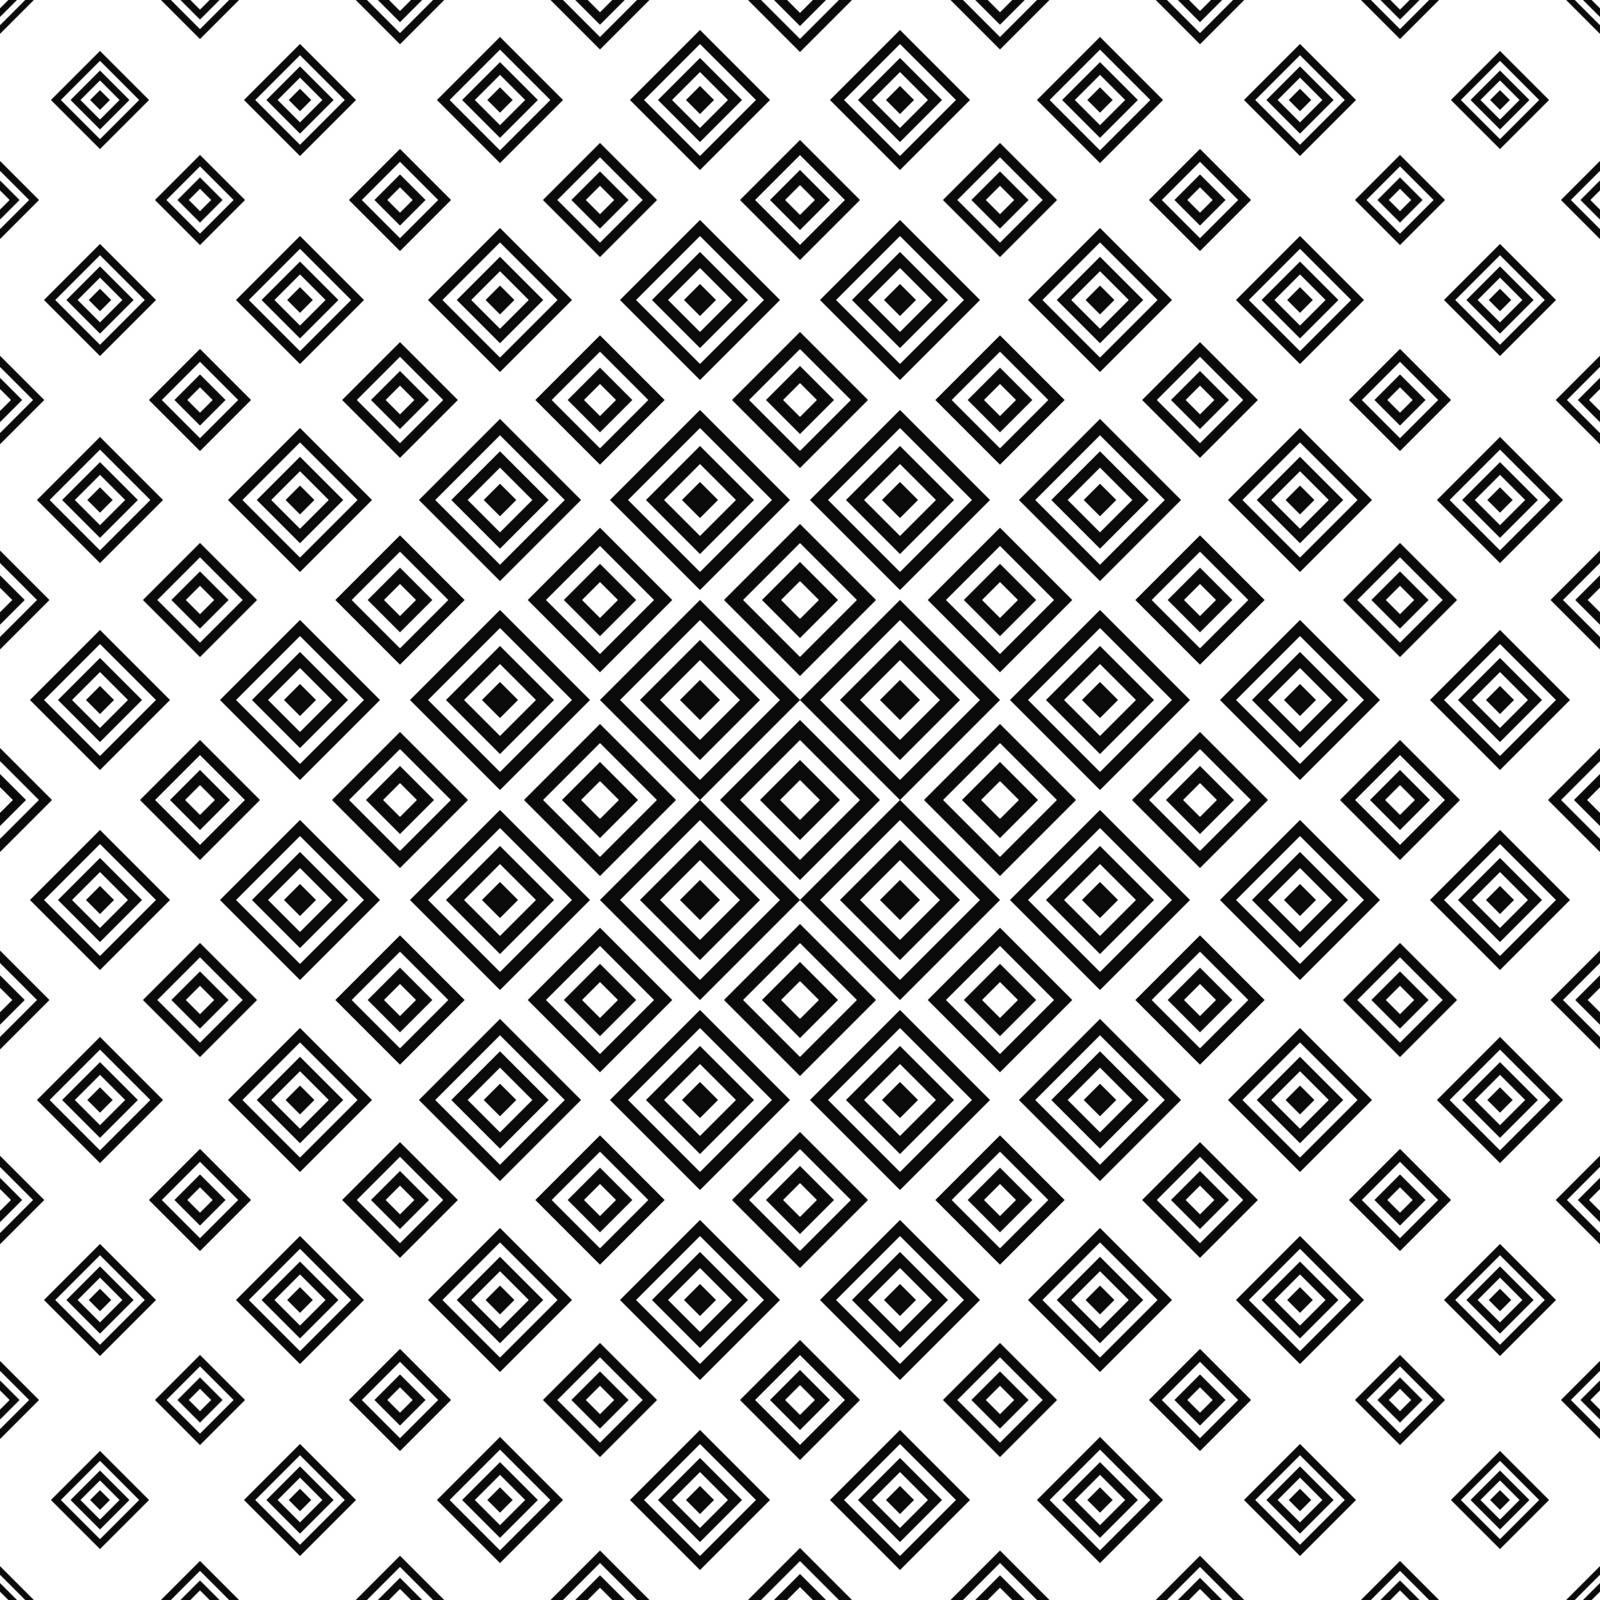 Monochrome abstract square repeat vector pattern background